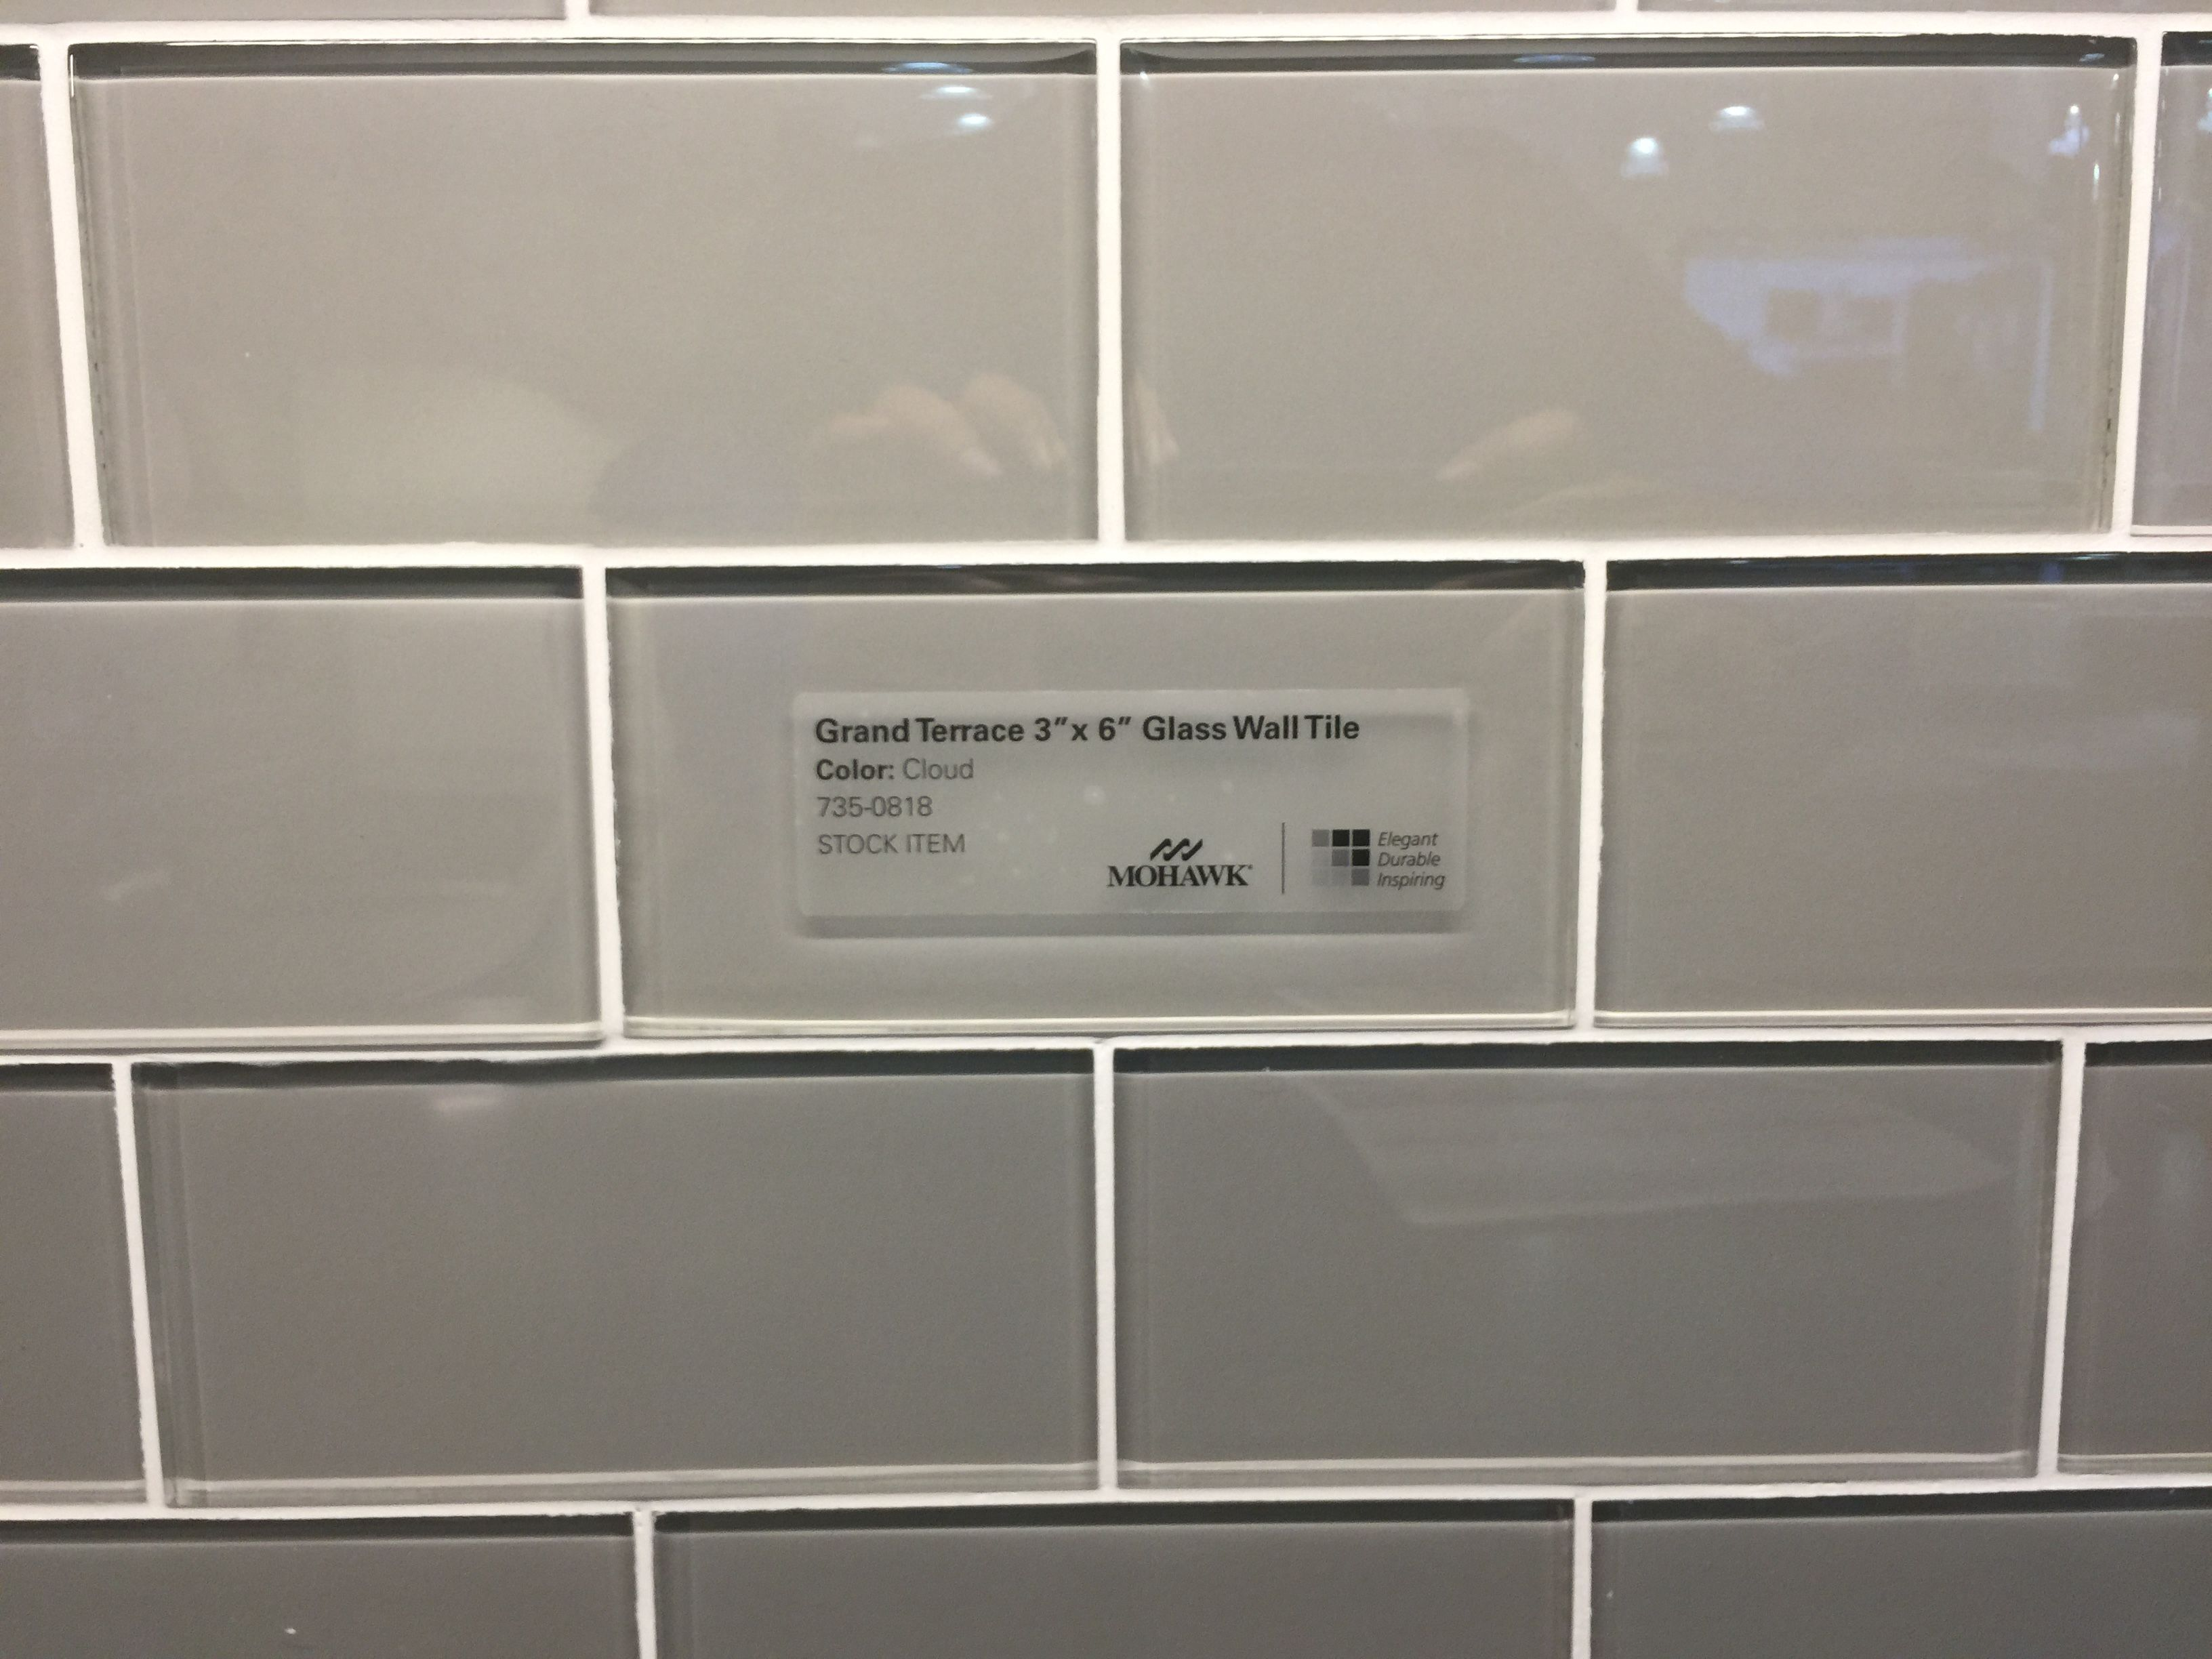 Backsplash Tile I Love From Menards For Kitchen Design Slate